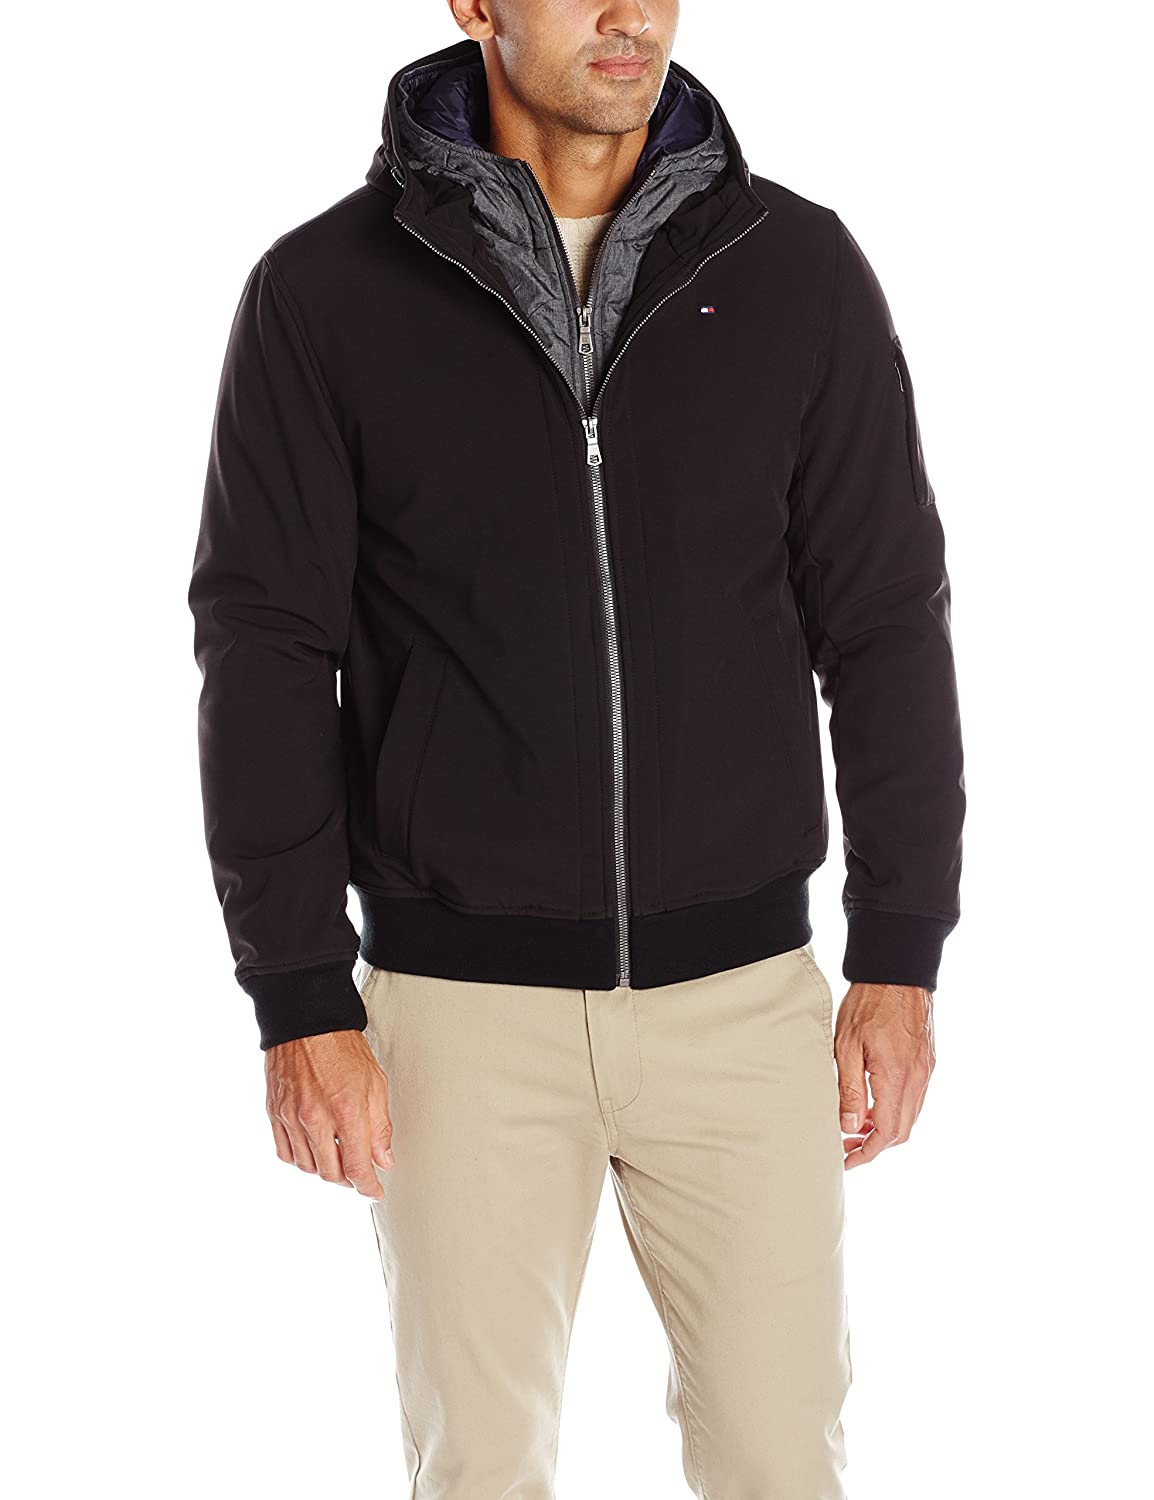 Tommy Hilfiger Men's Soft Shell Fashion Bomber with Contrast Bib and Hood 155AP223